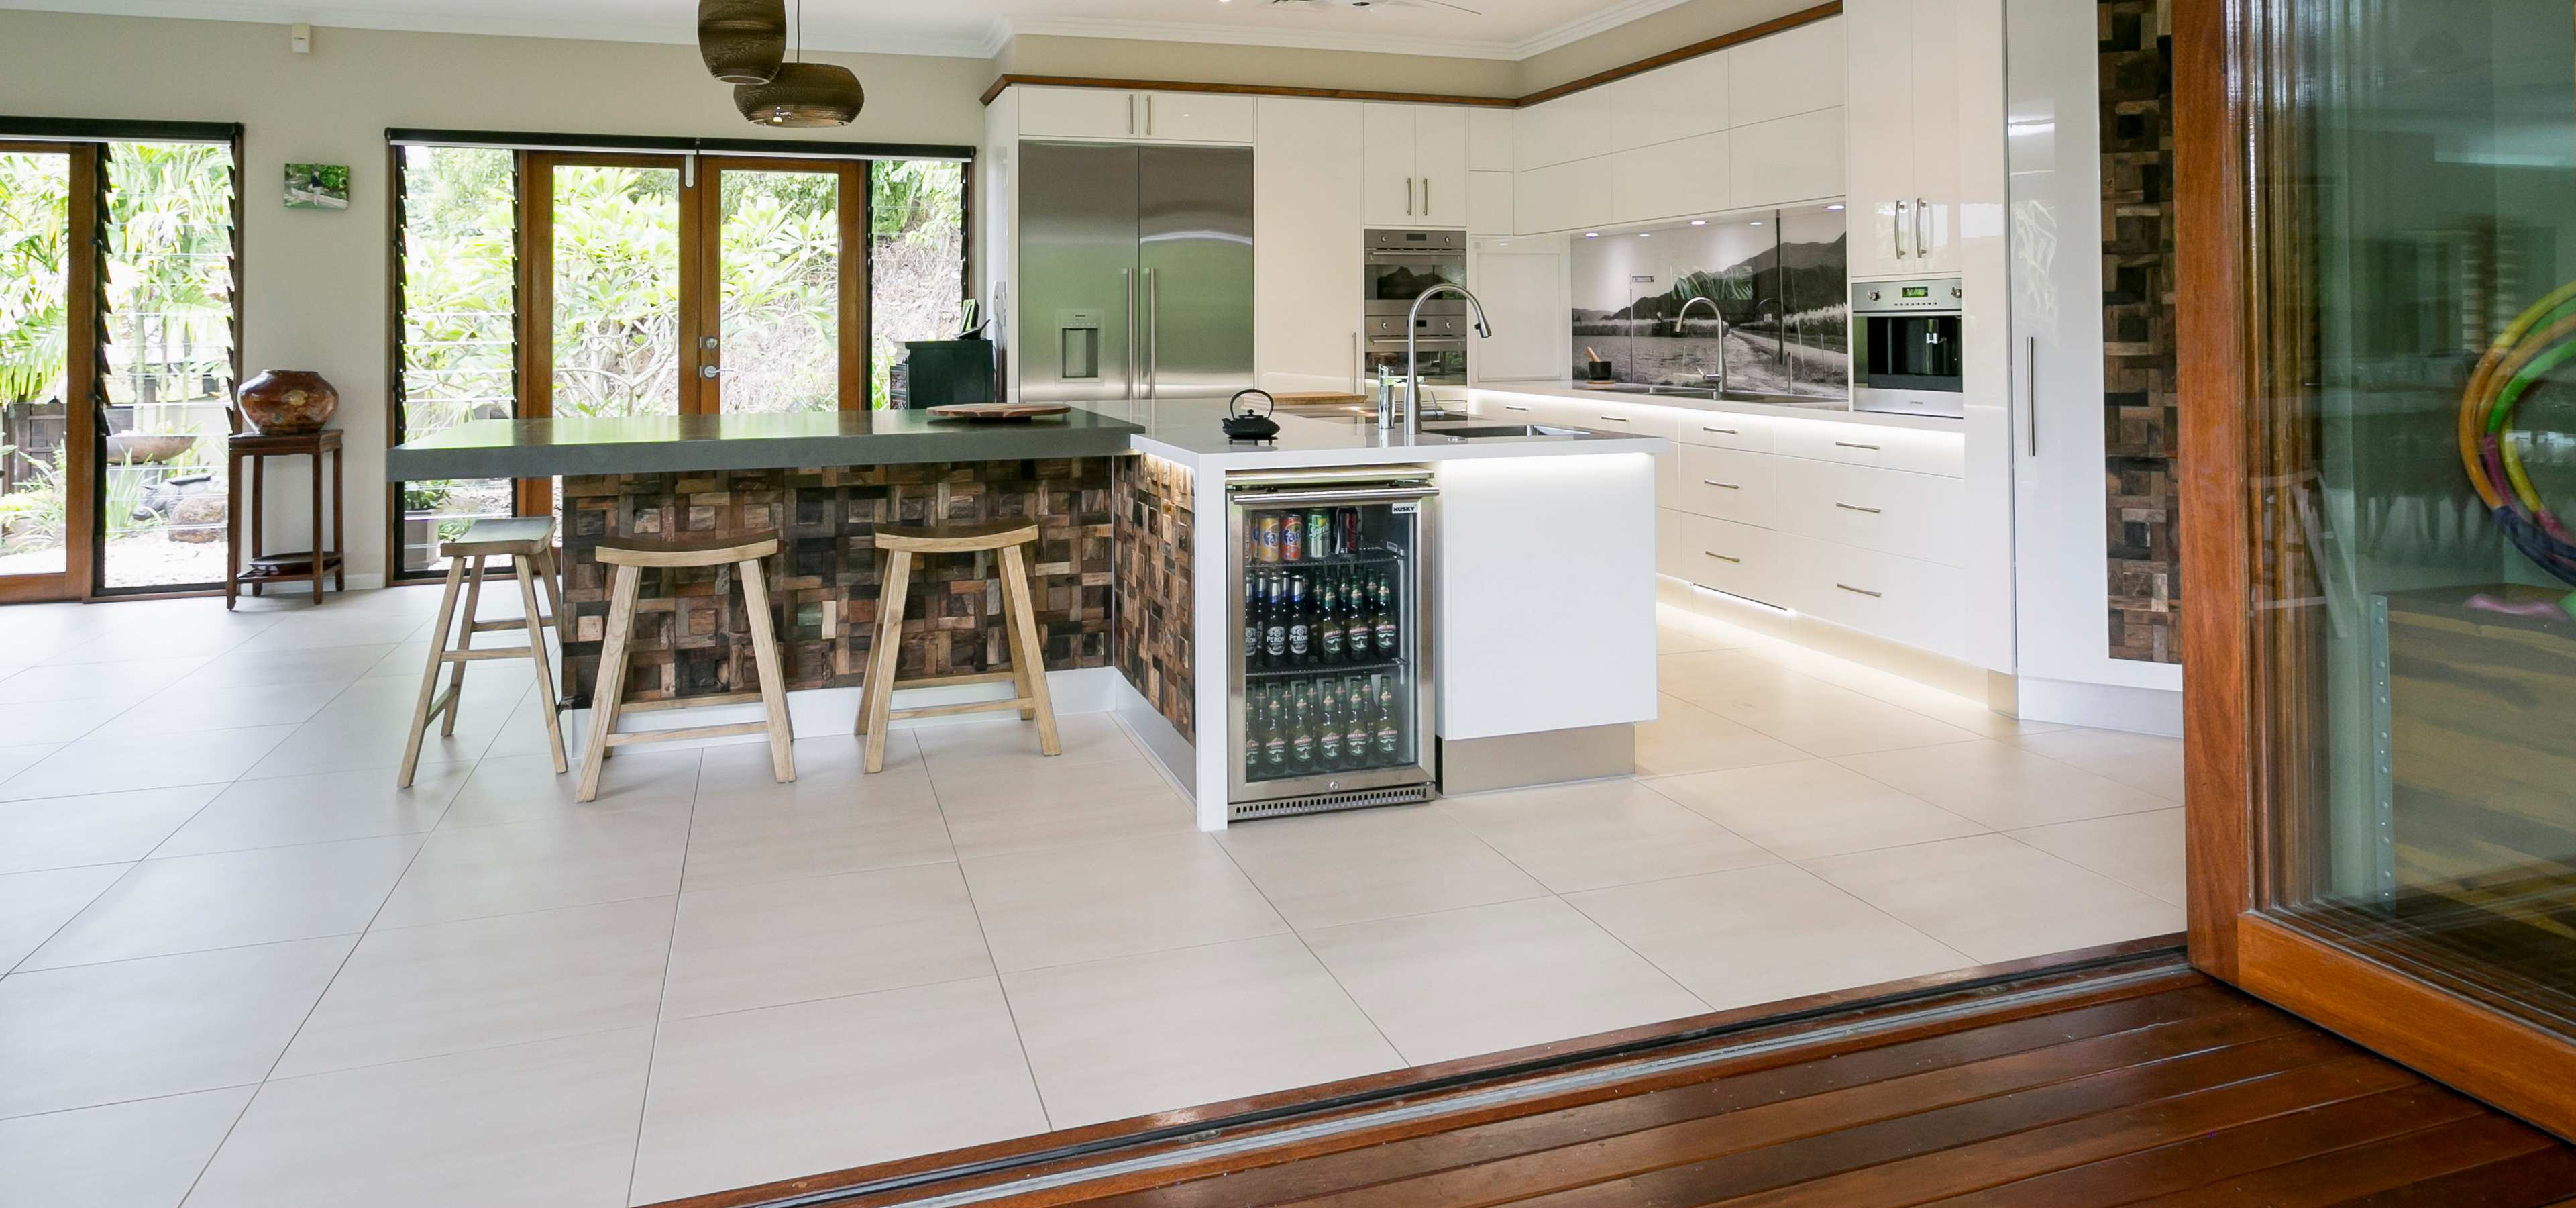 Kitchen Designs Cairns.  kitchen designers cairns Cairns Kitchen Designs Kitchens